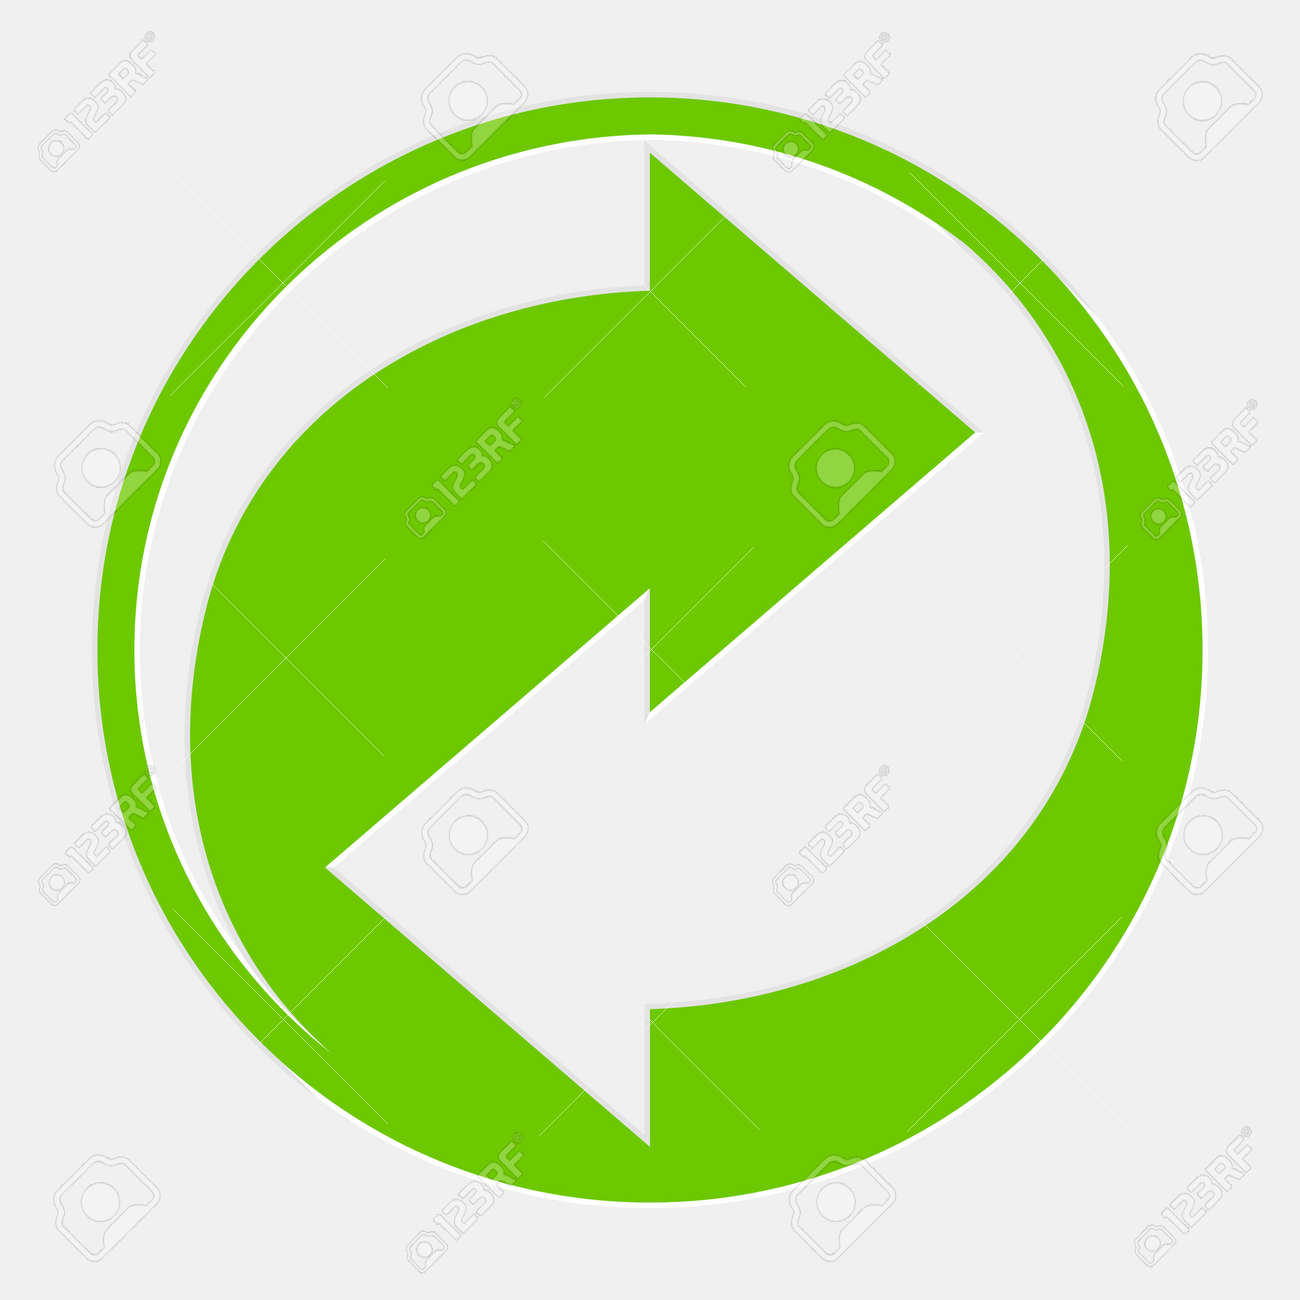 Recycle symbol sign of recycled material update icon royalty recycle symbol sign of recycled material update icon stock vector 83365313 biocorpaavc